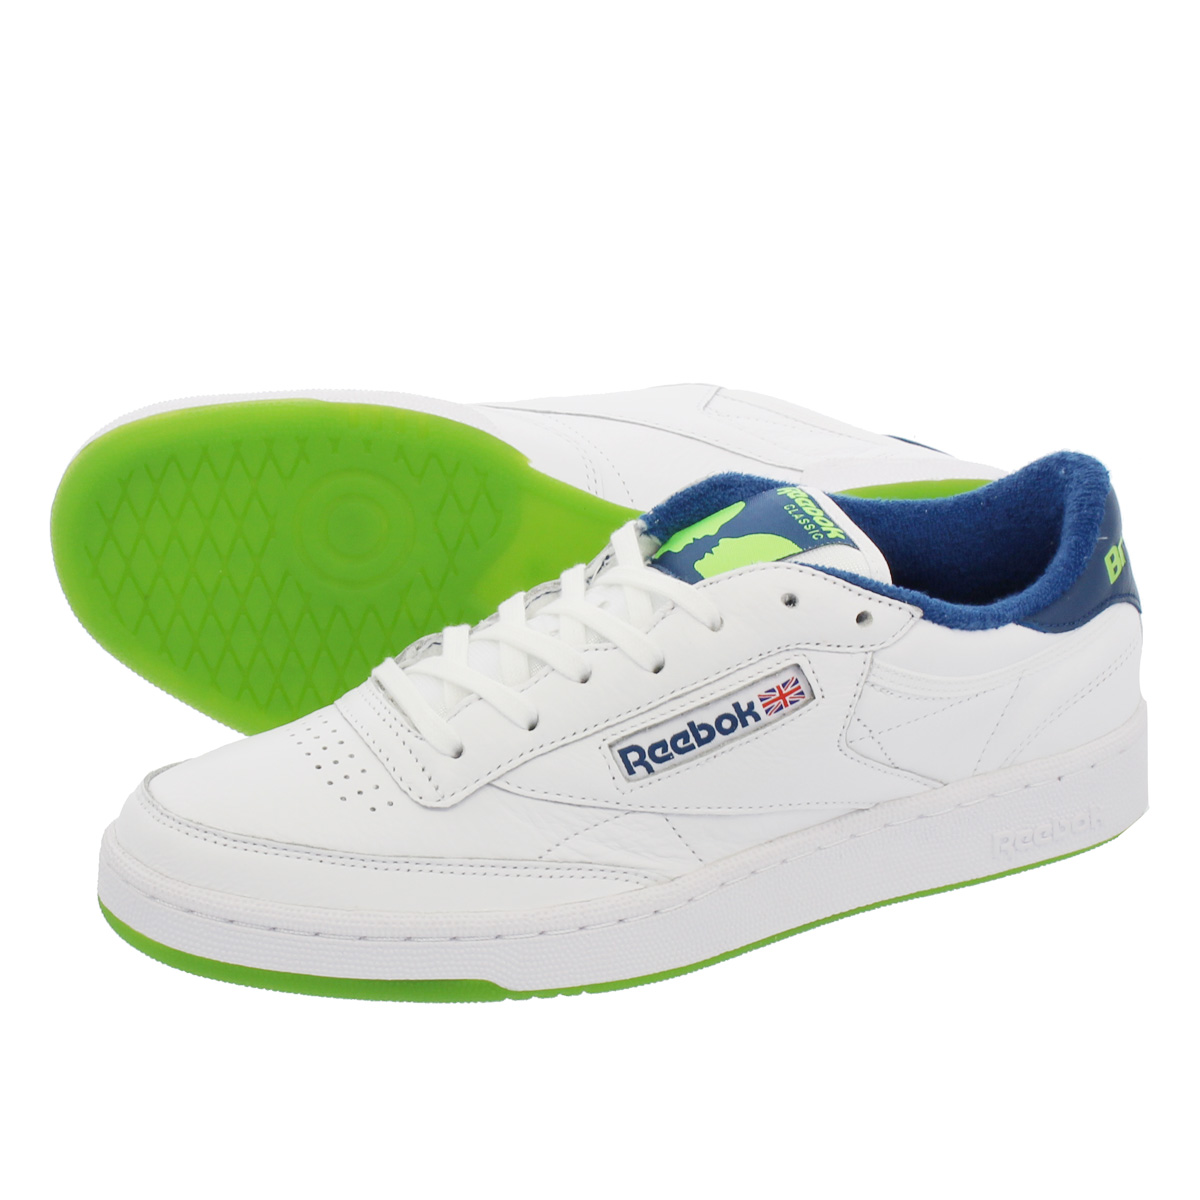 Reebok CLUB C 85 BRONZE リーボック クラブ C 85 ブロンズ NOBLE BLUE/GREEN/WHITE dv4822